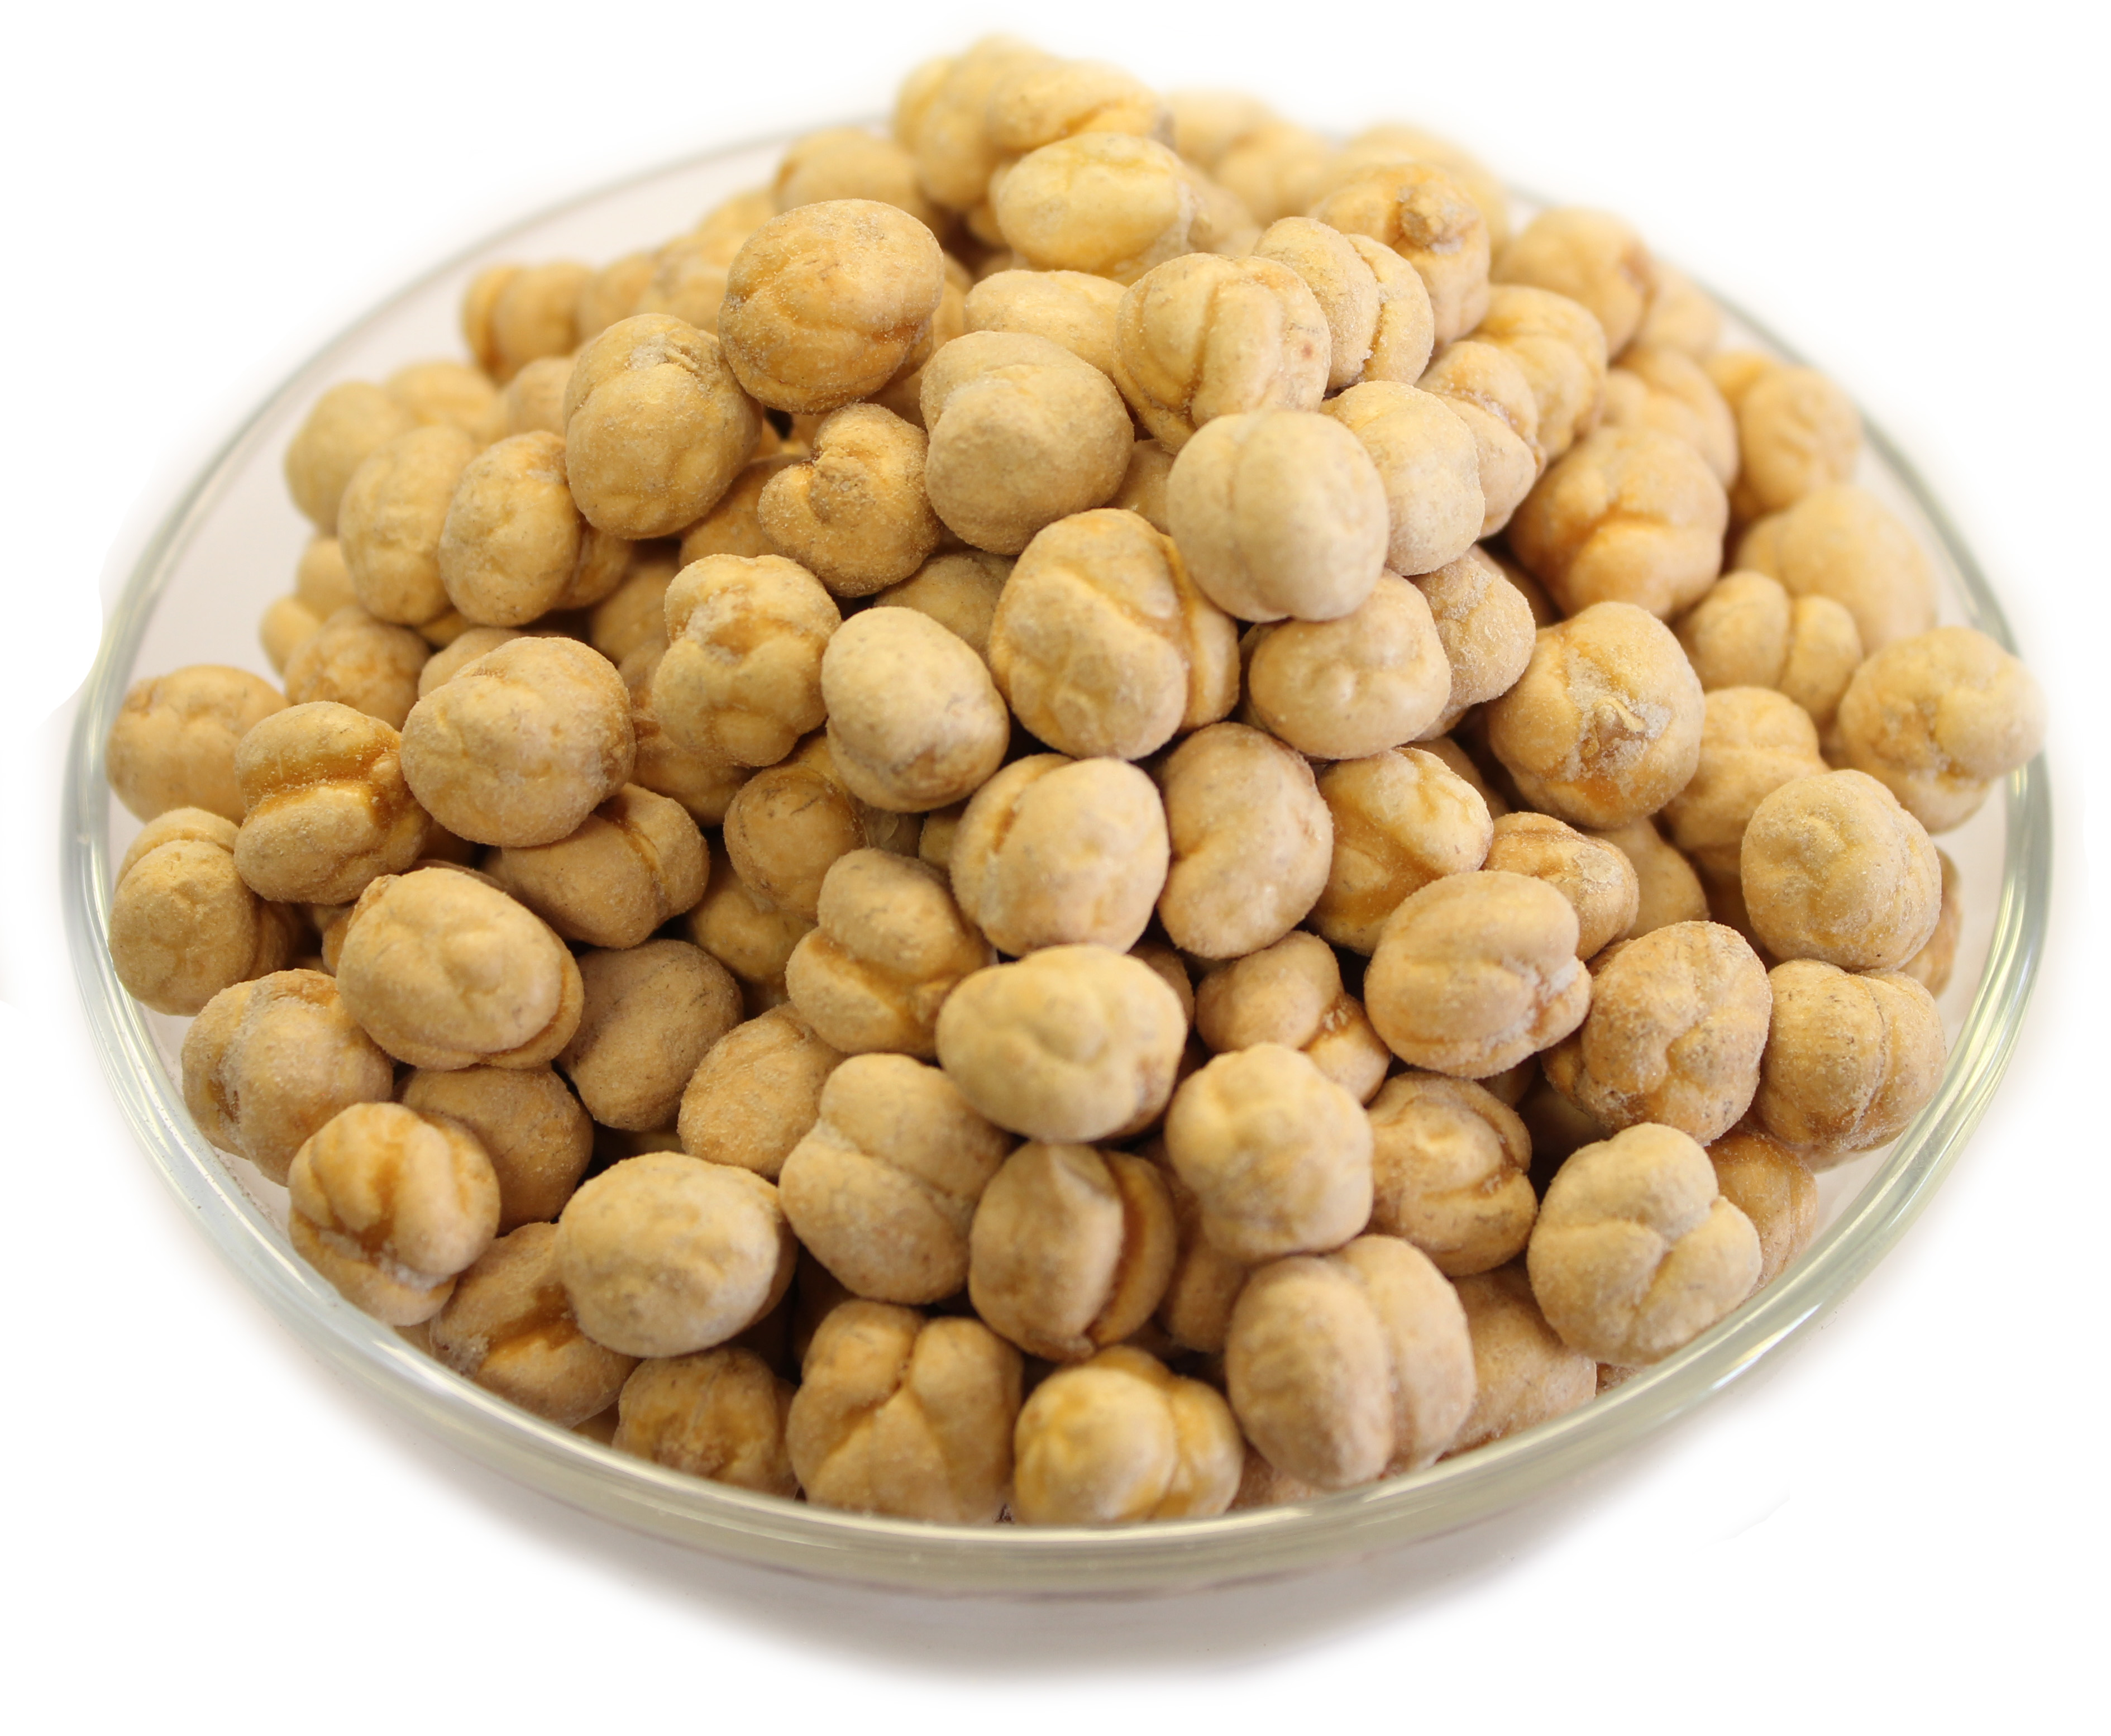 Roasted Chickpeas with Salt